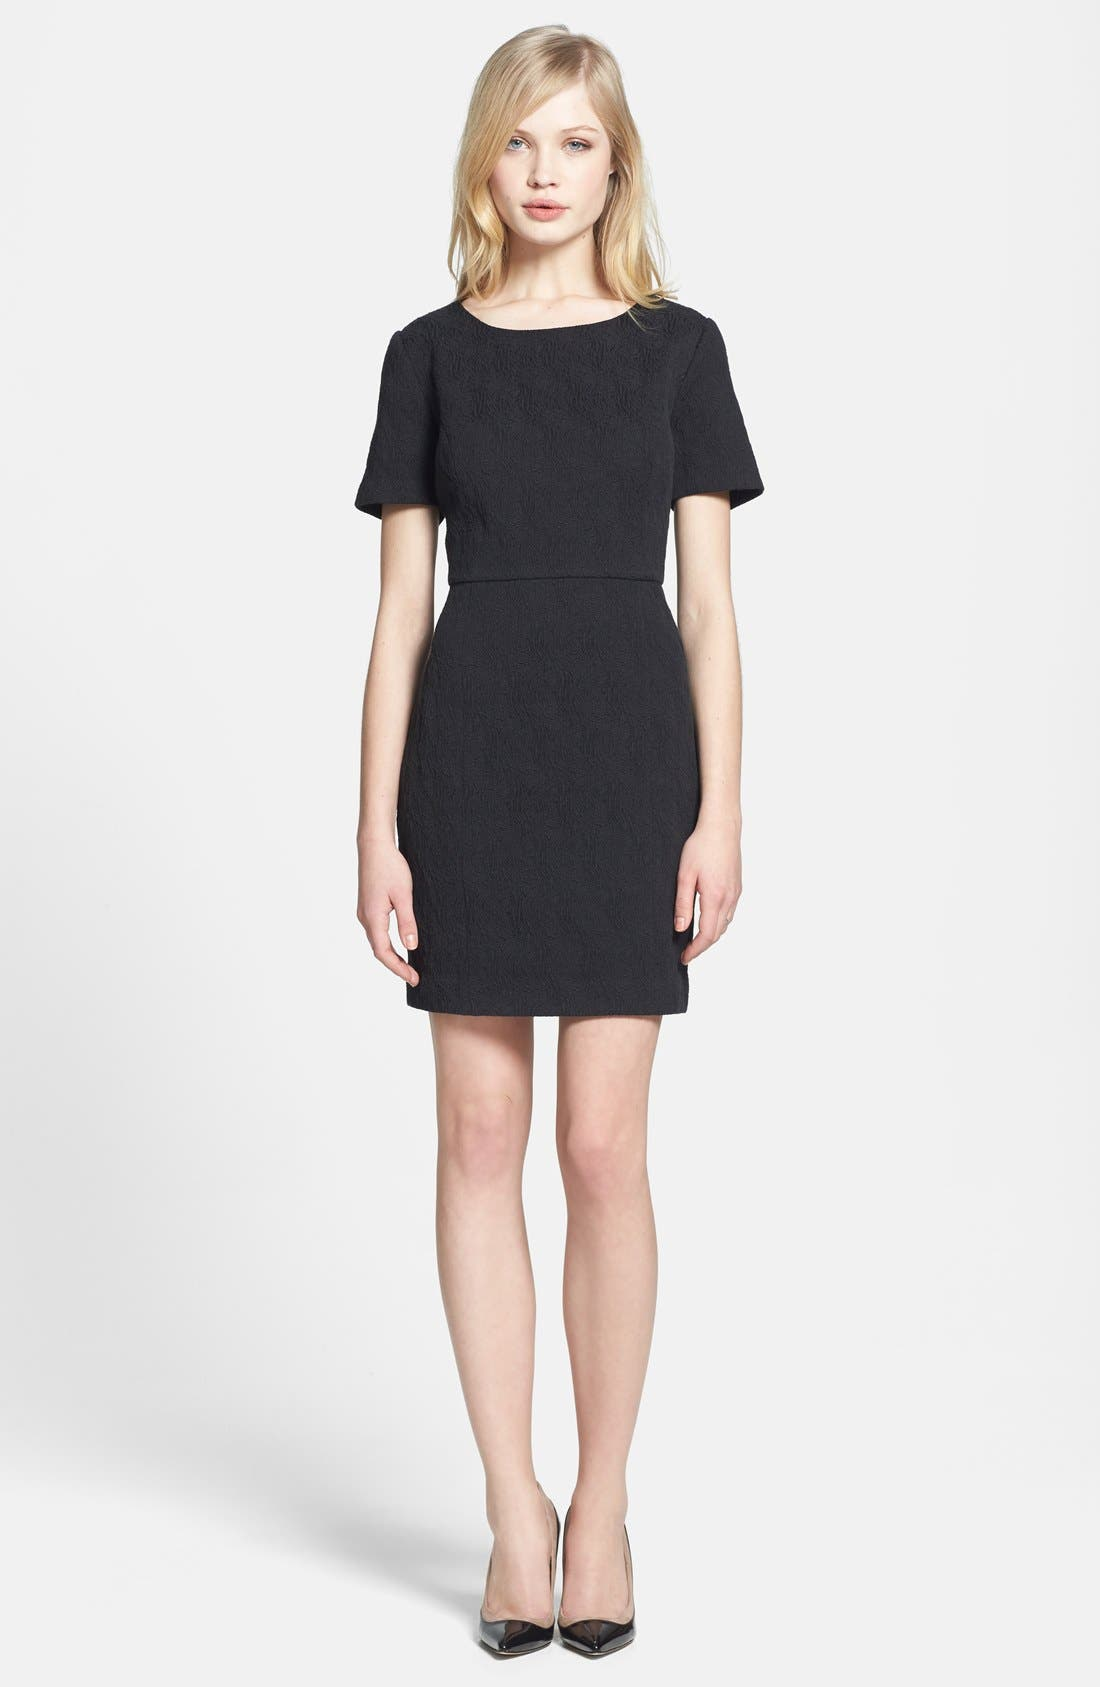 Alternate Image 1 Selected - Chelsea28 Back Cutout Jacquard Dress